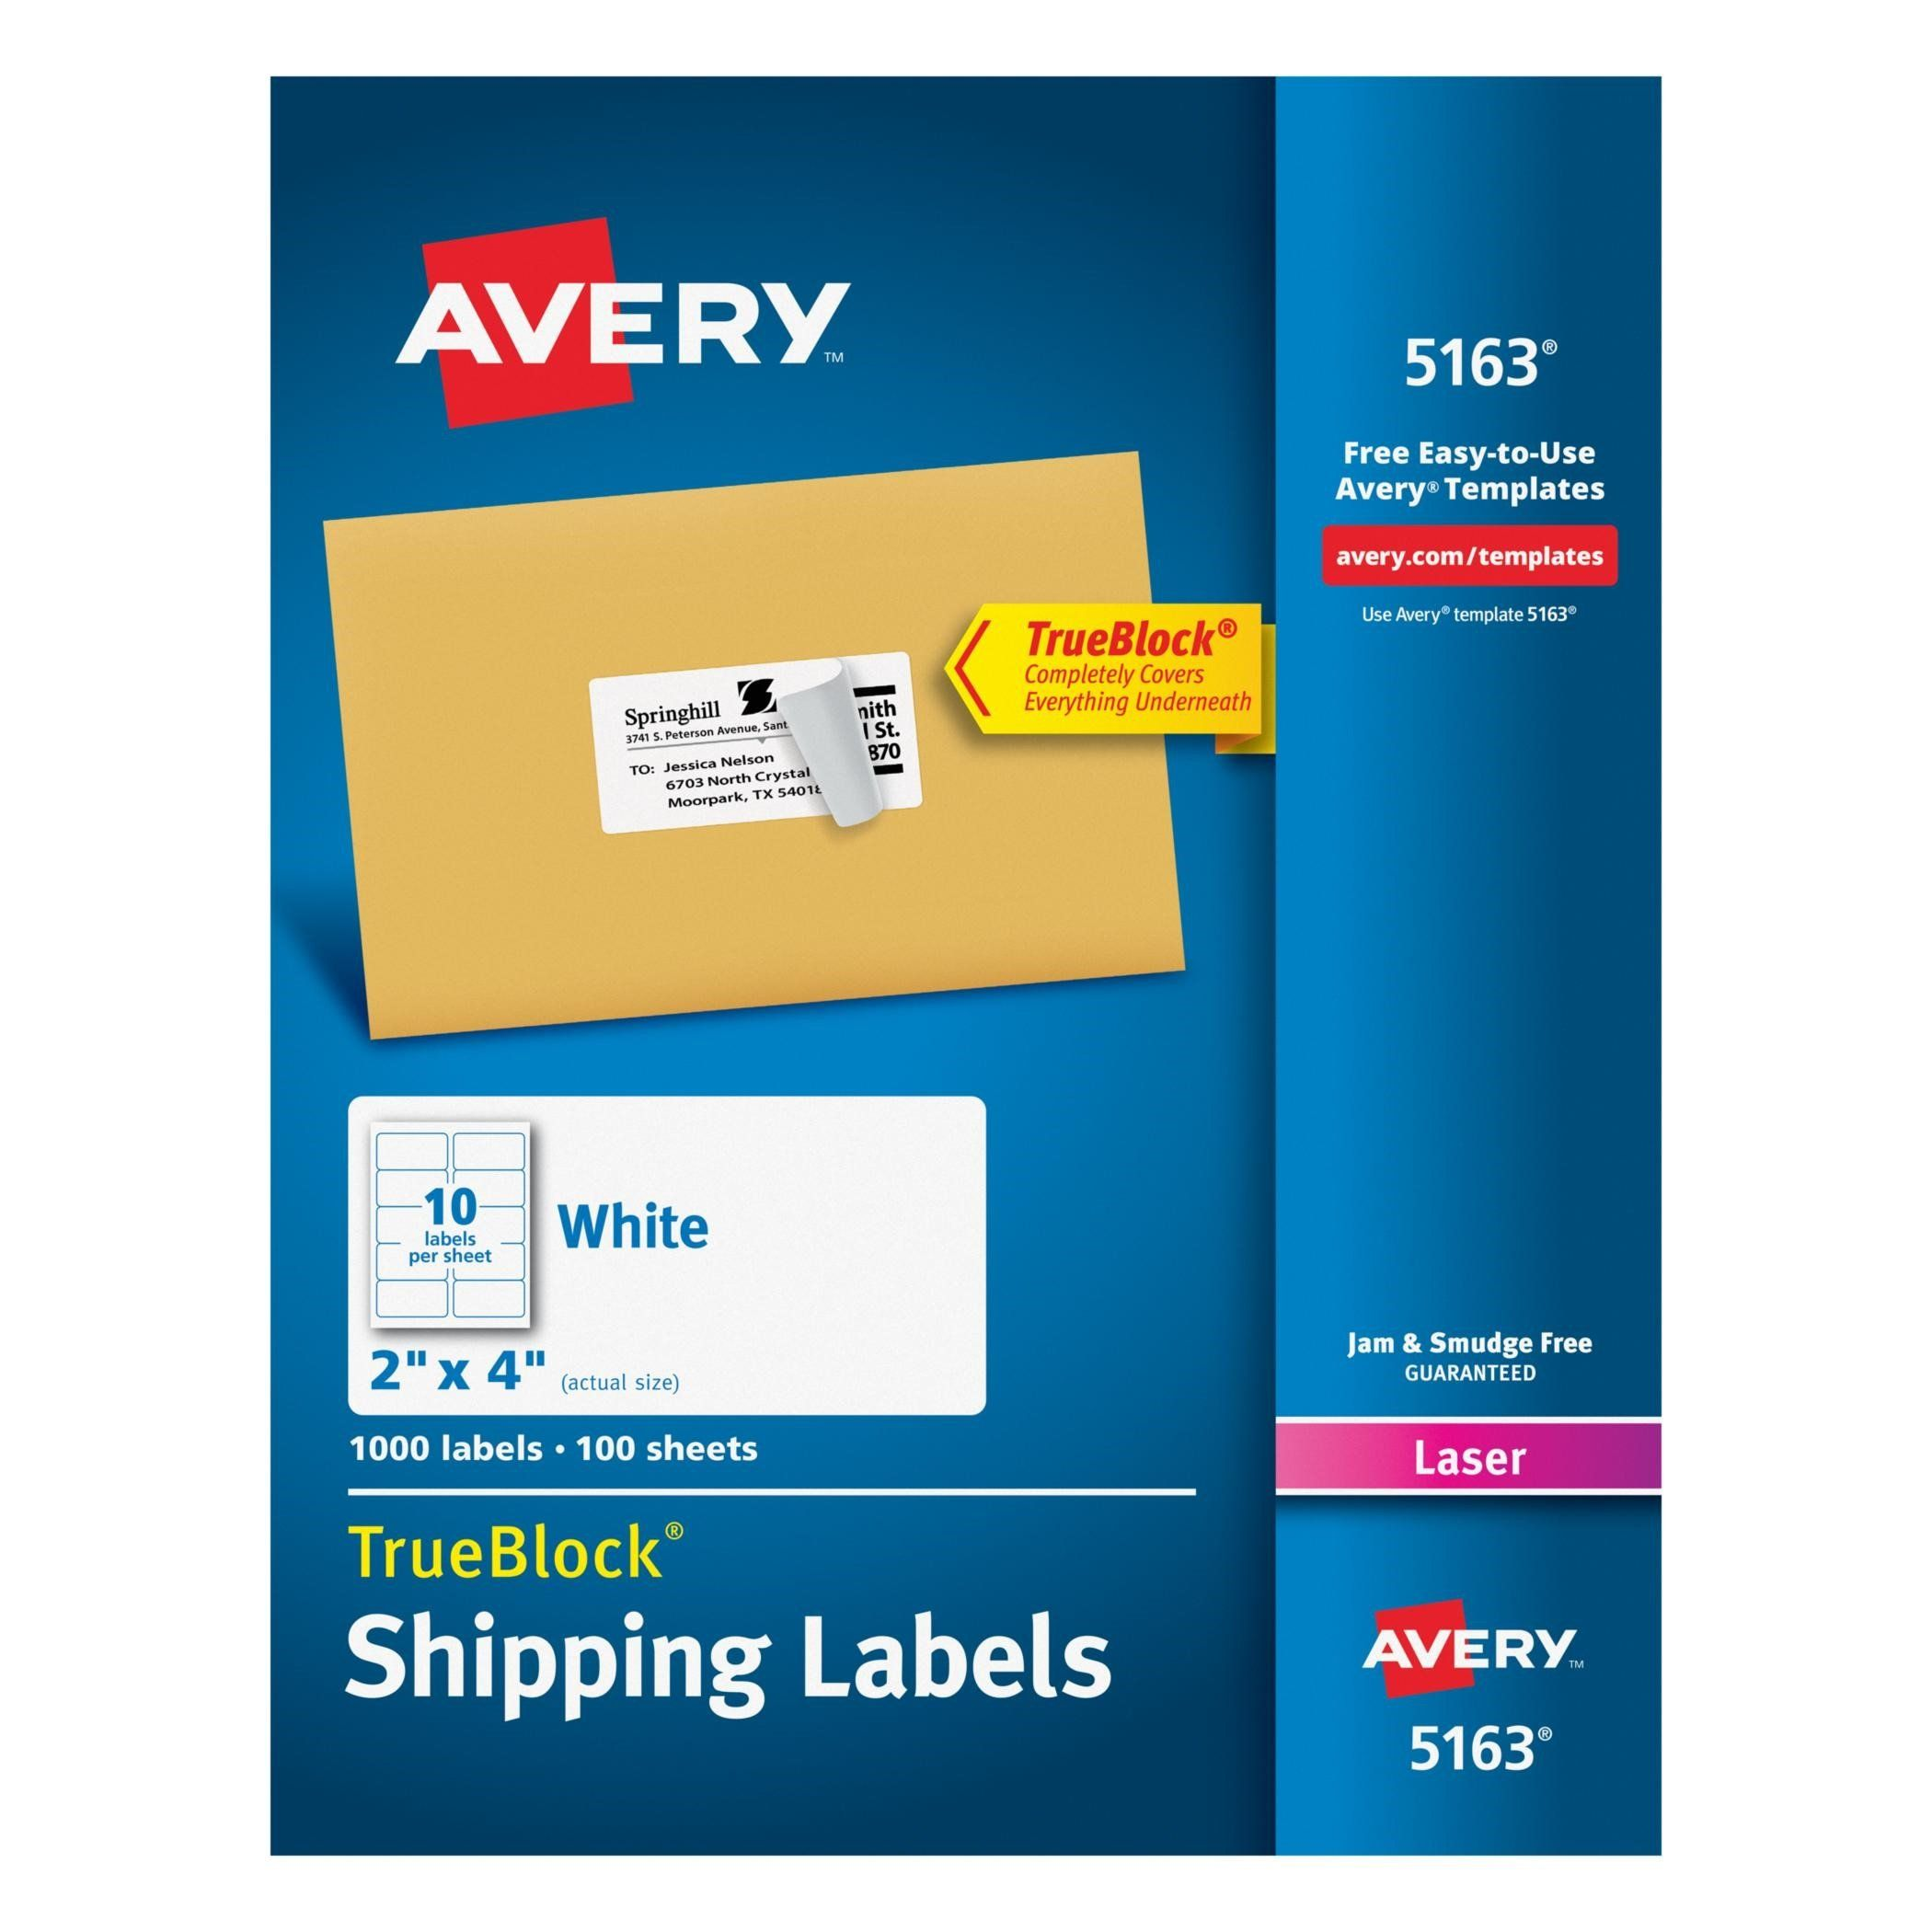 Avery White Shipping Labels w/ TrueBlock Technology for